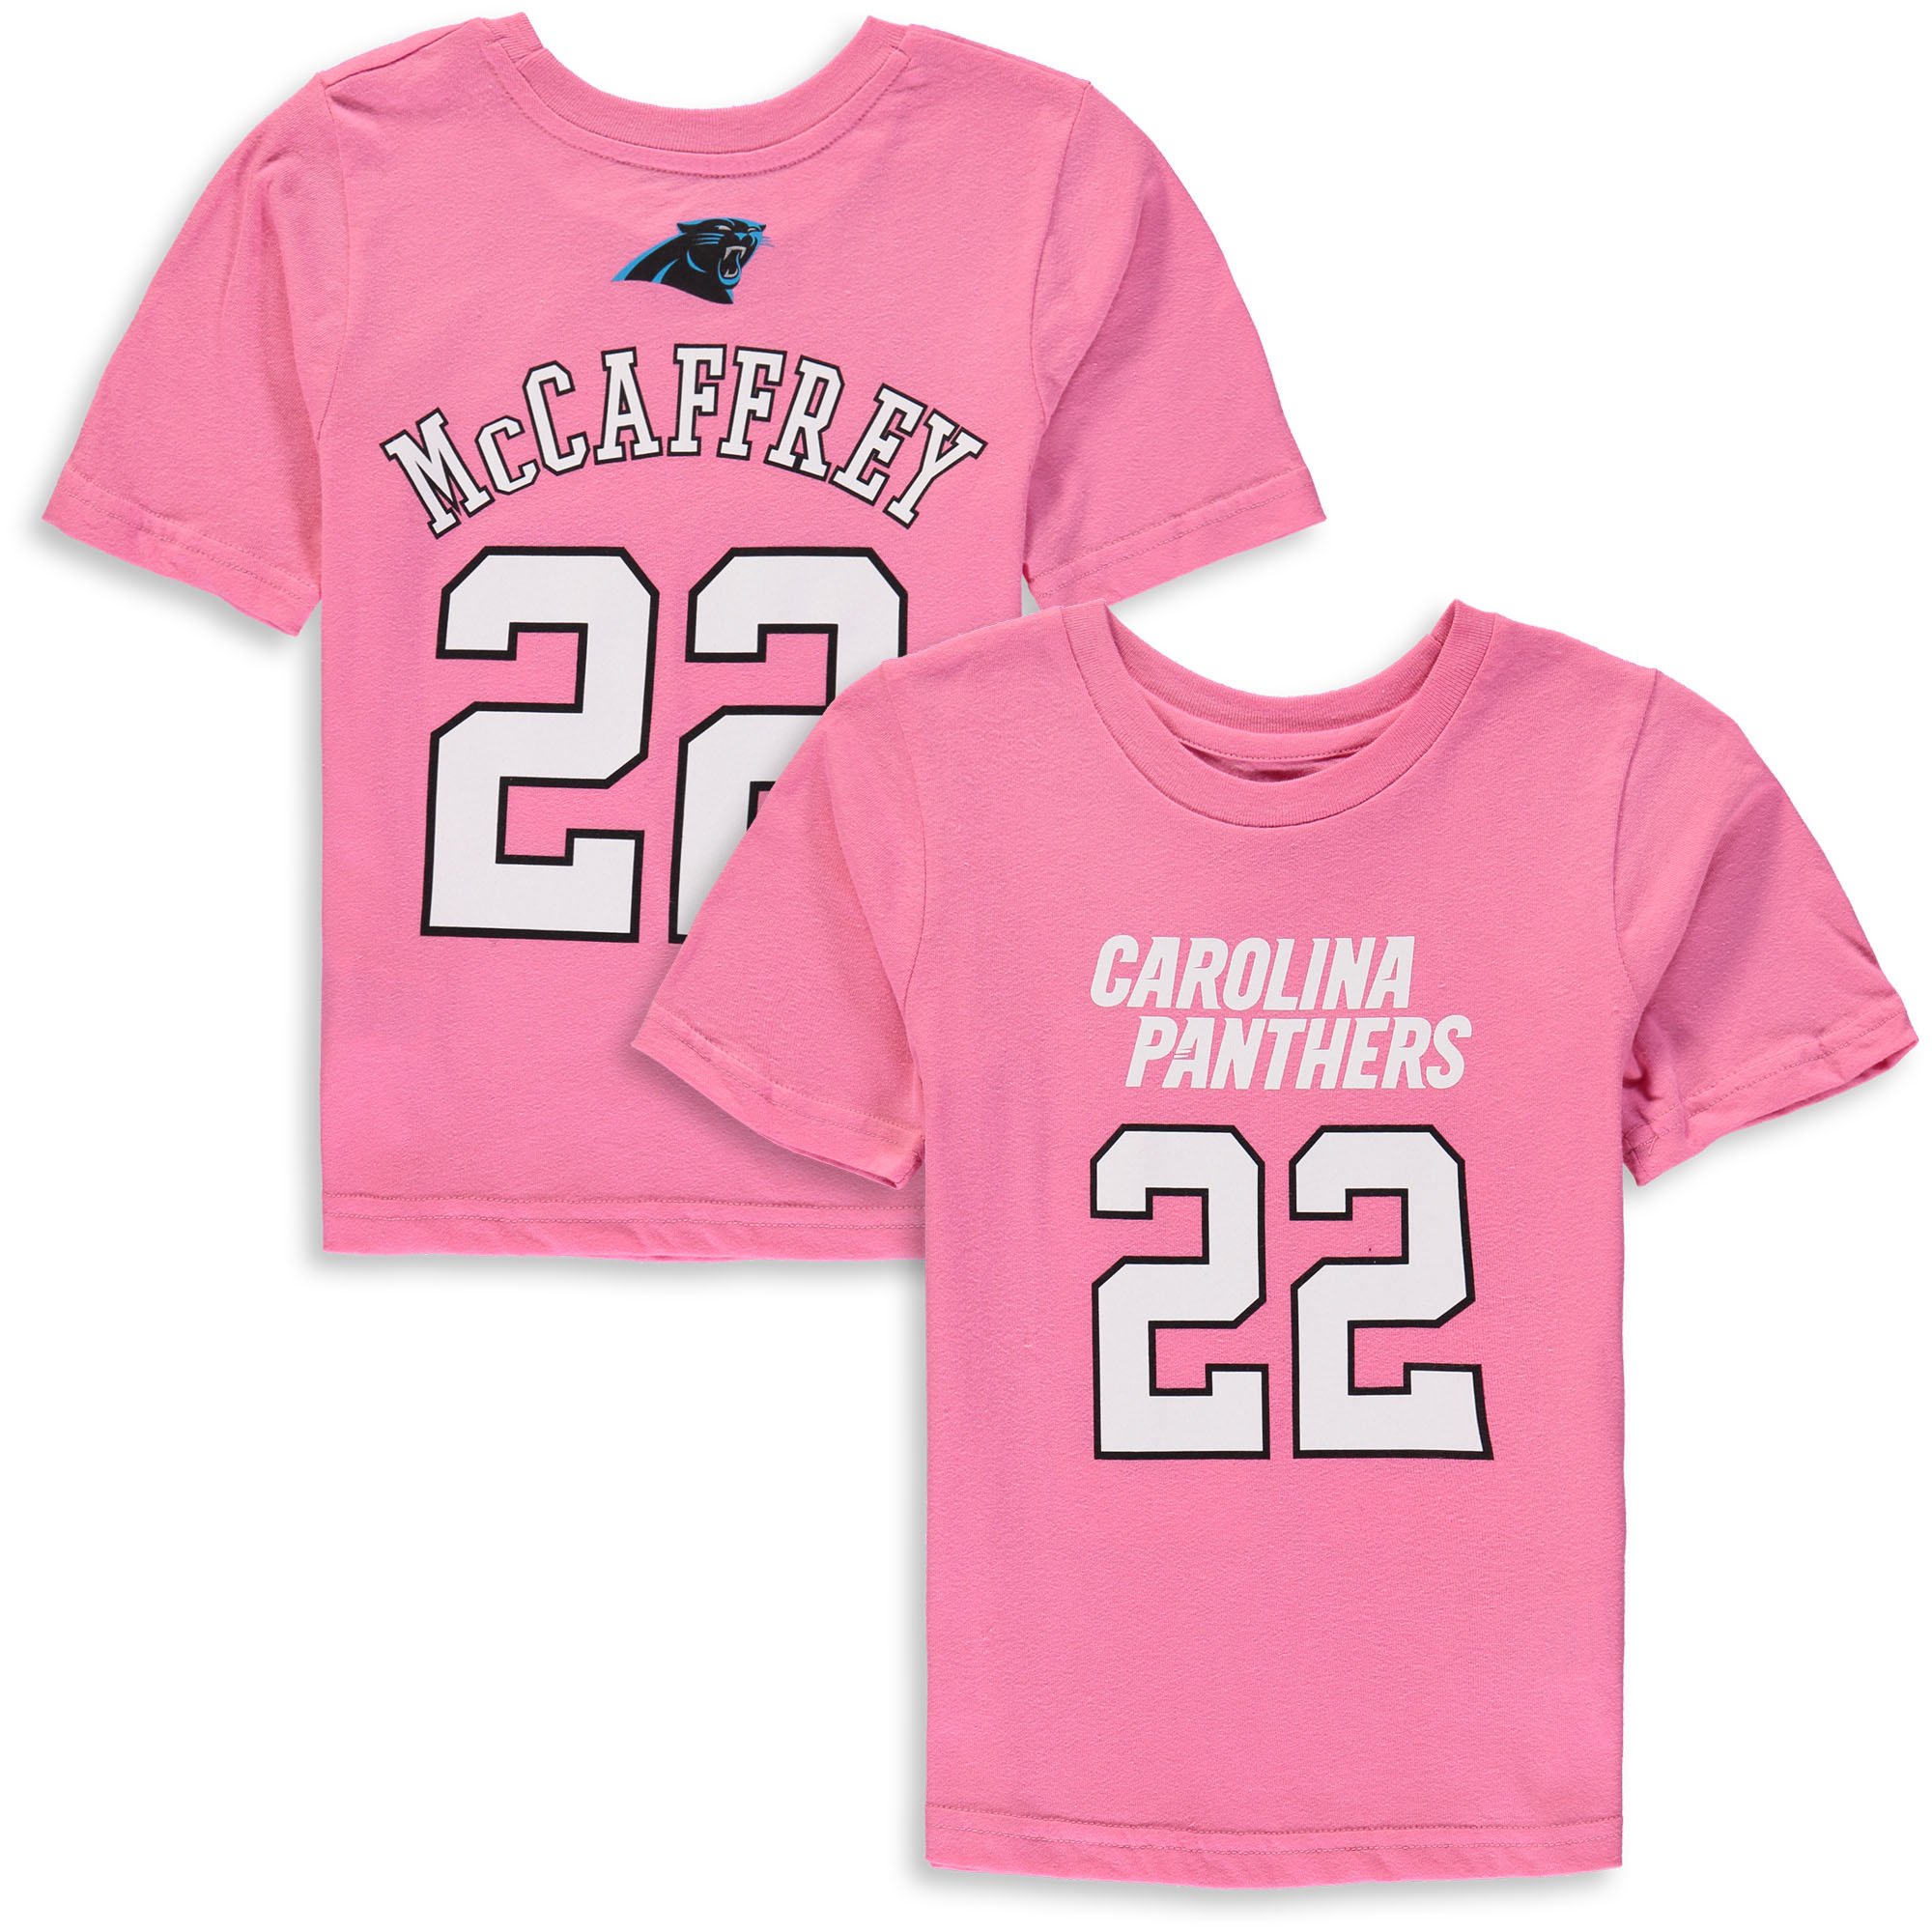 Christian McCaffrey Carolina Panthers Girls Preschool Player Mainliner Name & Number T-Shirt - Pink